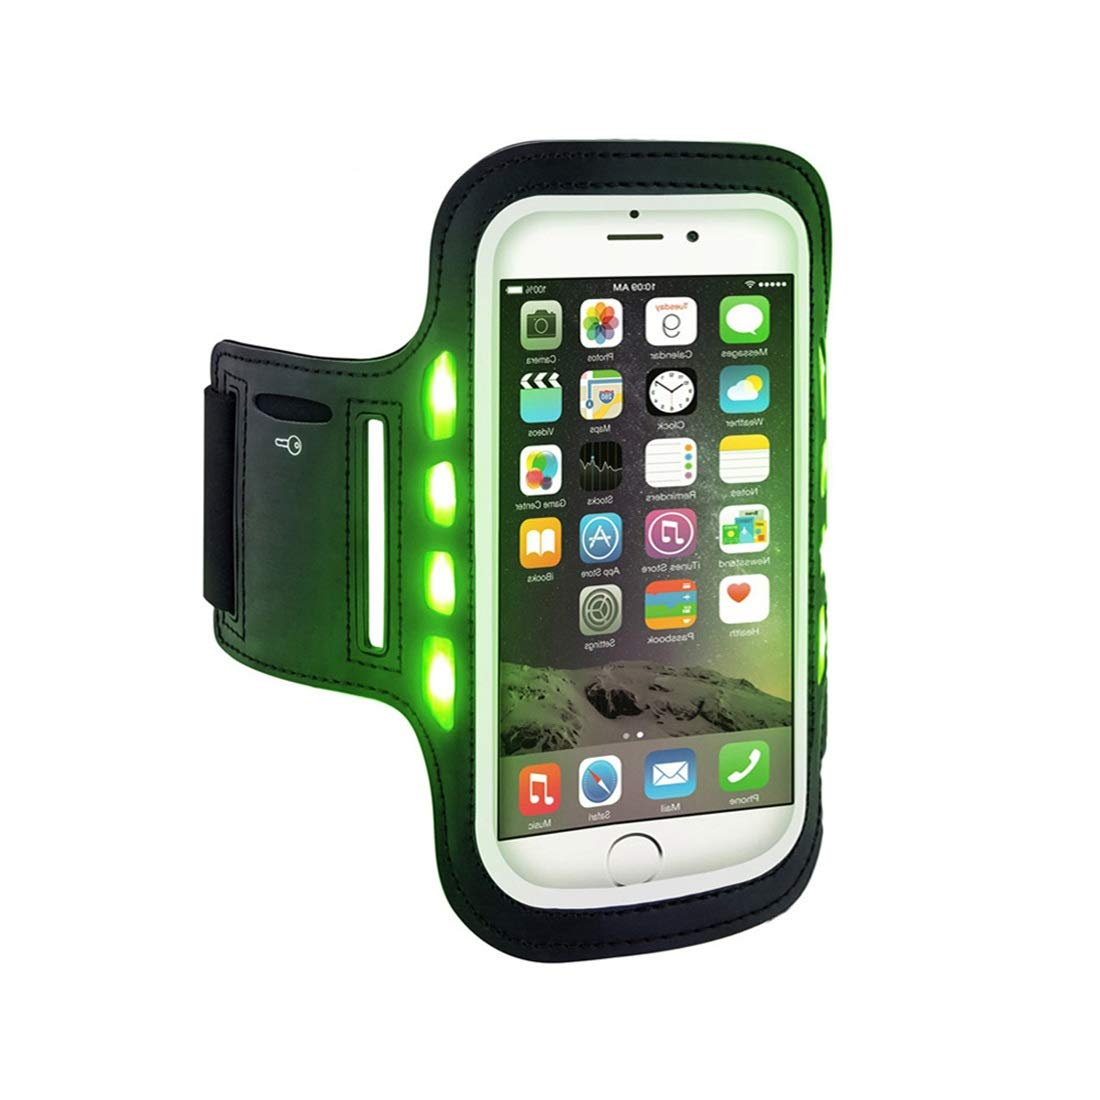 Hemengjuan Outdoor Sports Fitness Bag, Outdoor Led Cycling Fitness Mobile Phone Arm Band (Color : Green) by Hemengjuan